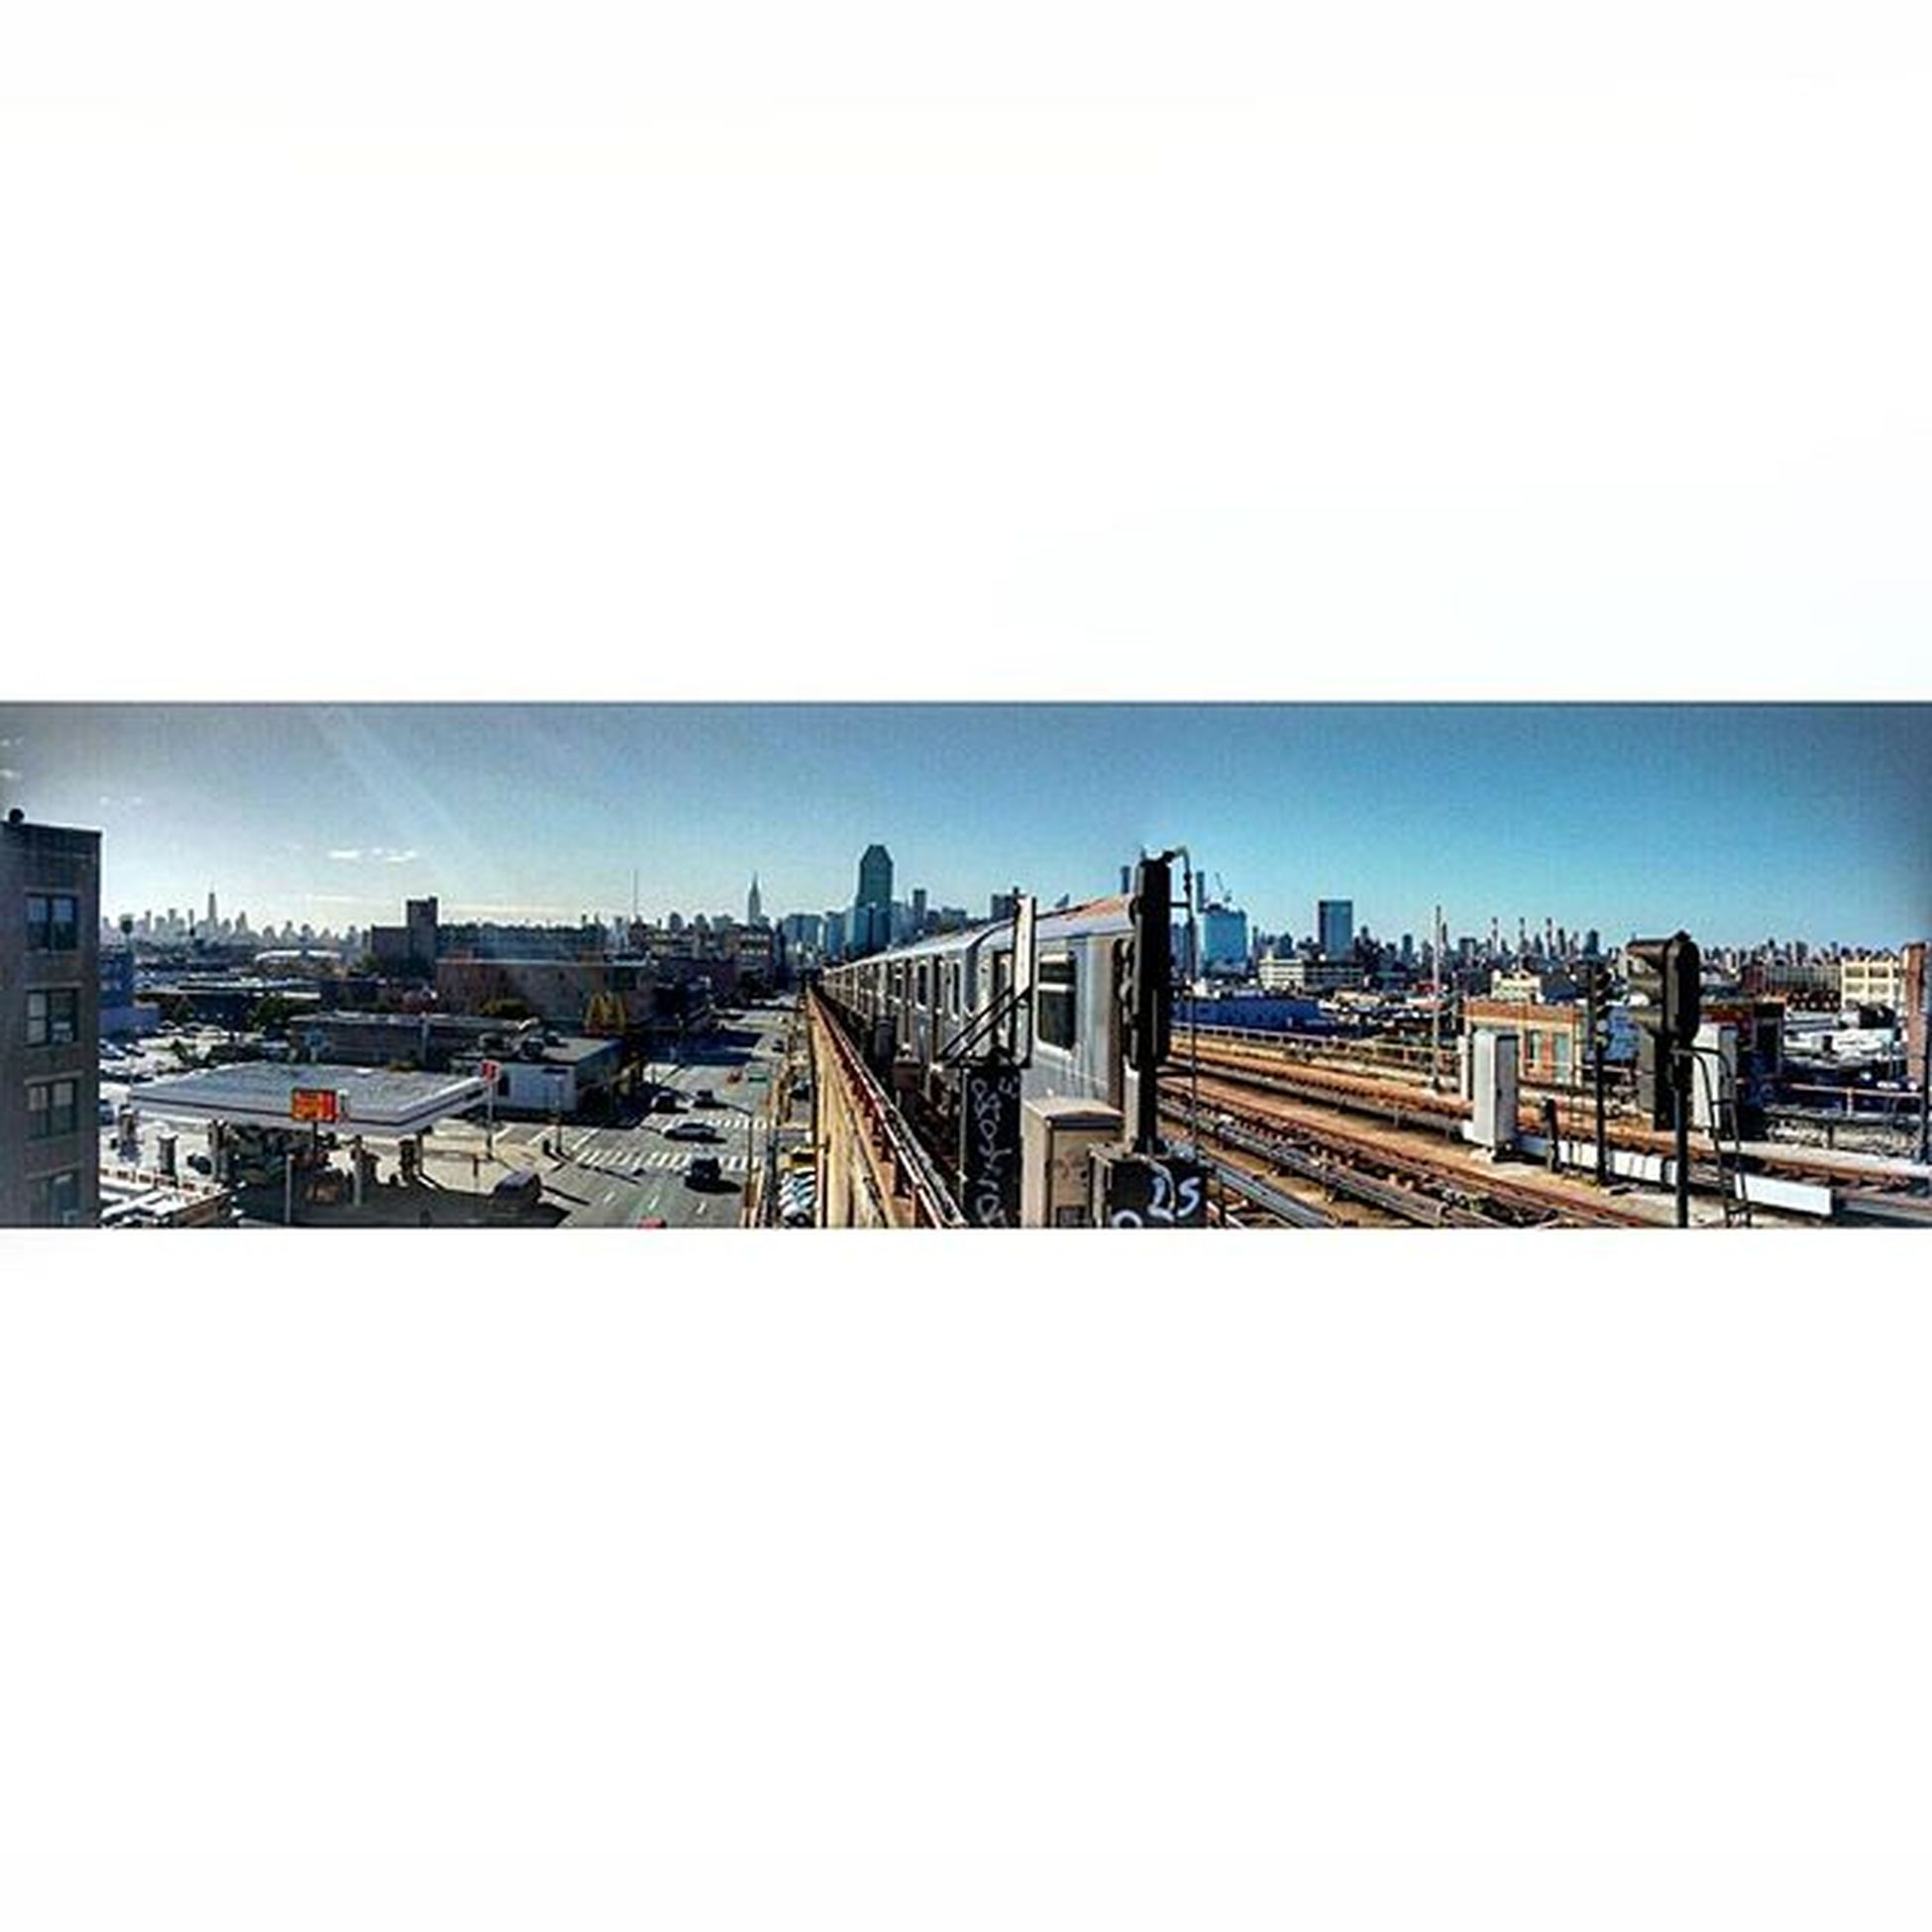 NYC Panorama LIC Tracks Manhattan Urban Design Trains Elevatedtrainstation Took a couple of pics, stiched them together and got this cool pic